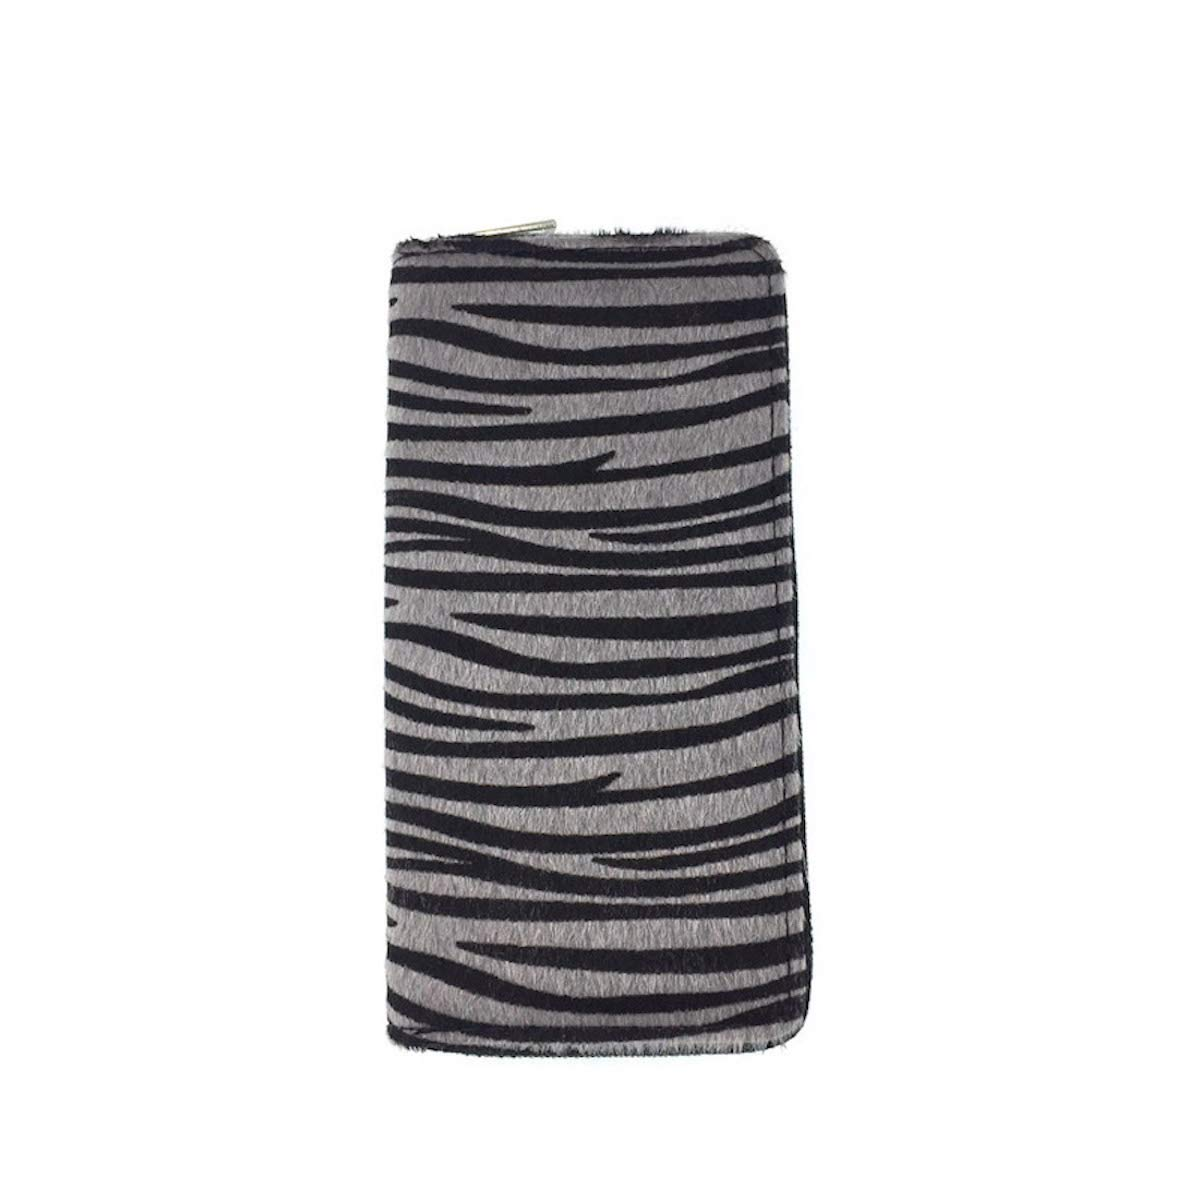 Wallet All-in-One Faux Leather Long Zippered Clutch in Fun and Unique Prints